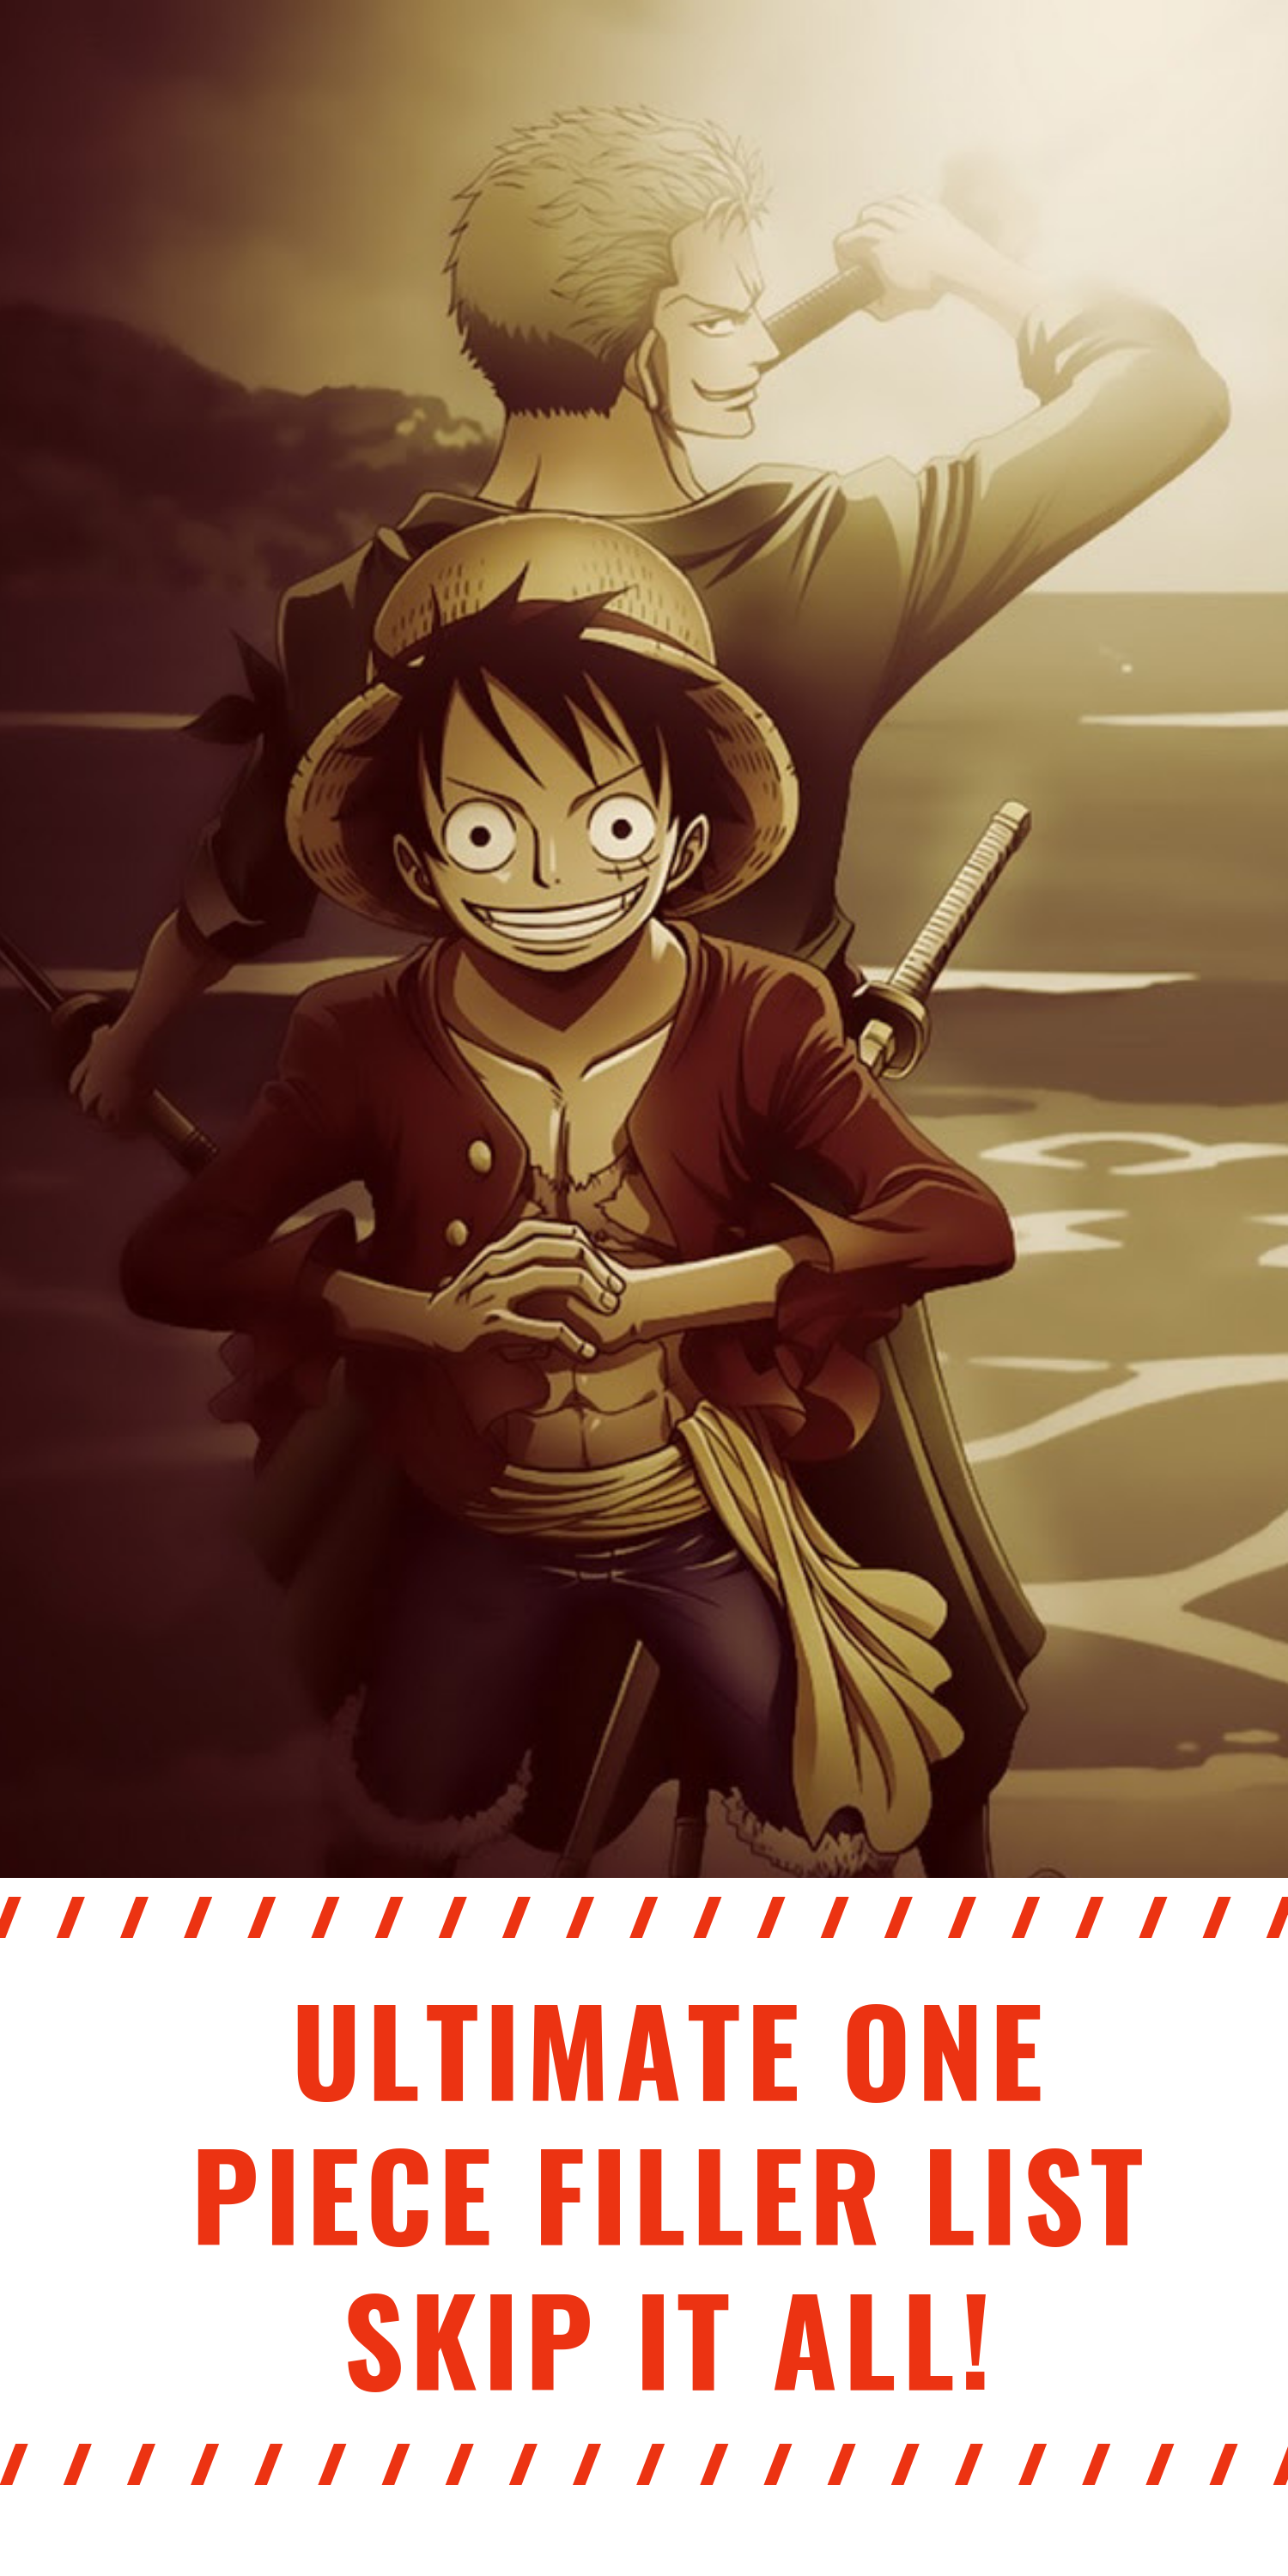 Ultimate One Piece Filler List Anime dragon ball, One